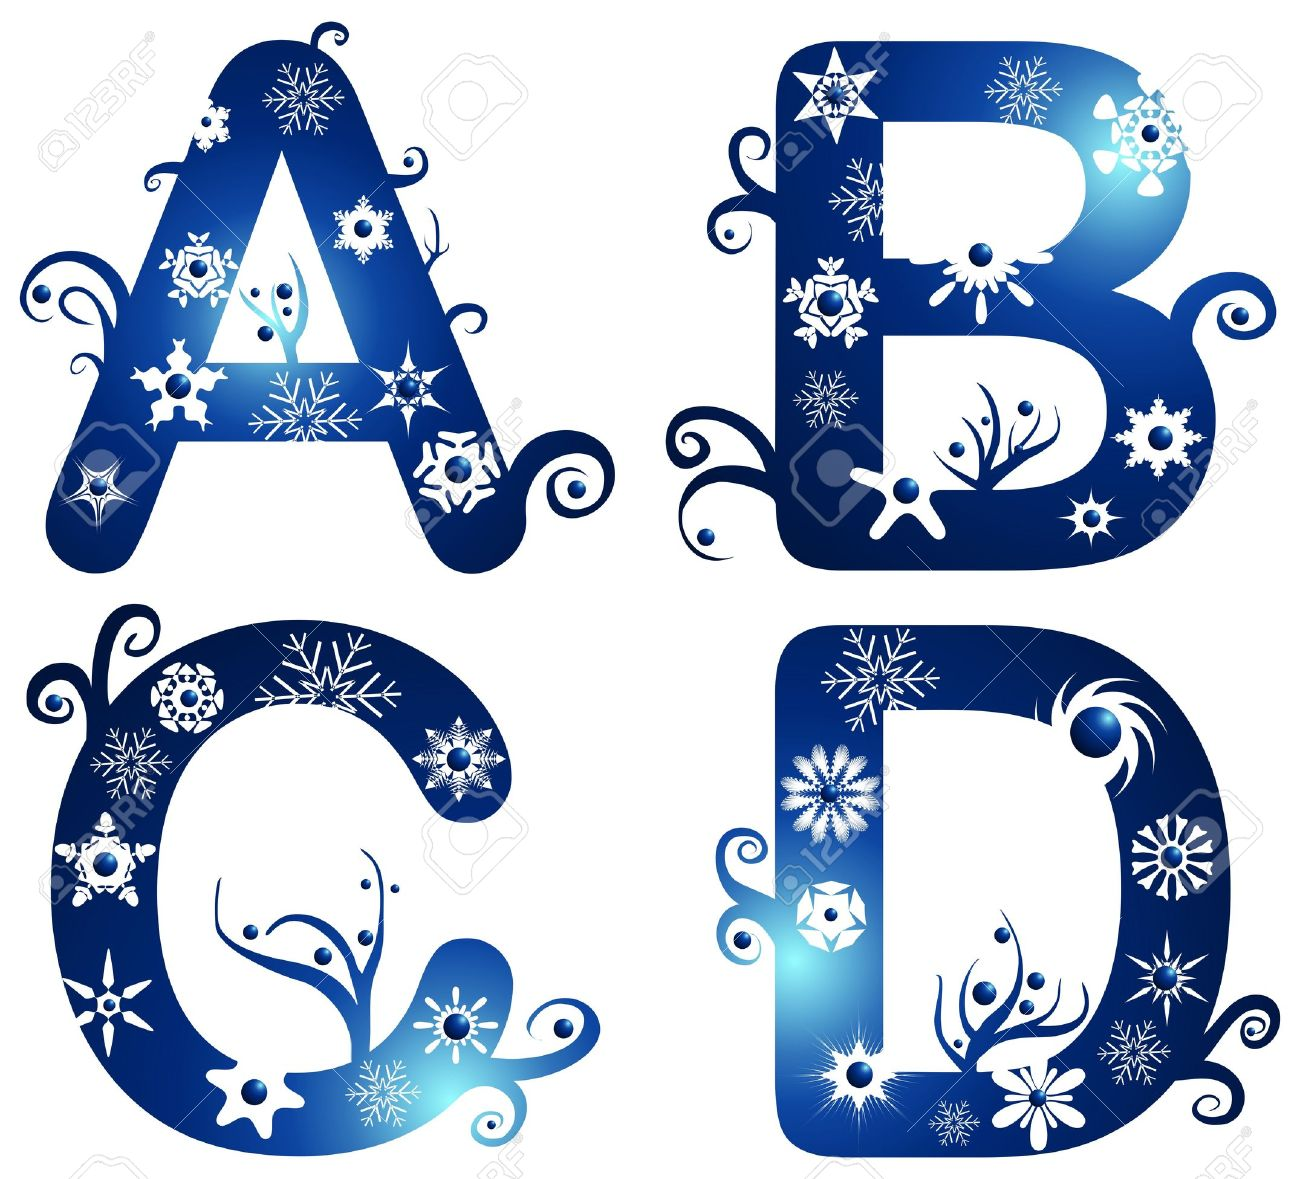 Letter b winter clipart clip black and white Letter b winter clipart - ClipartFest clip black and white